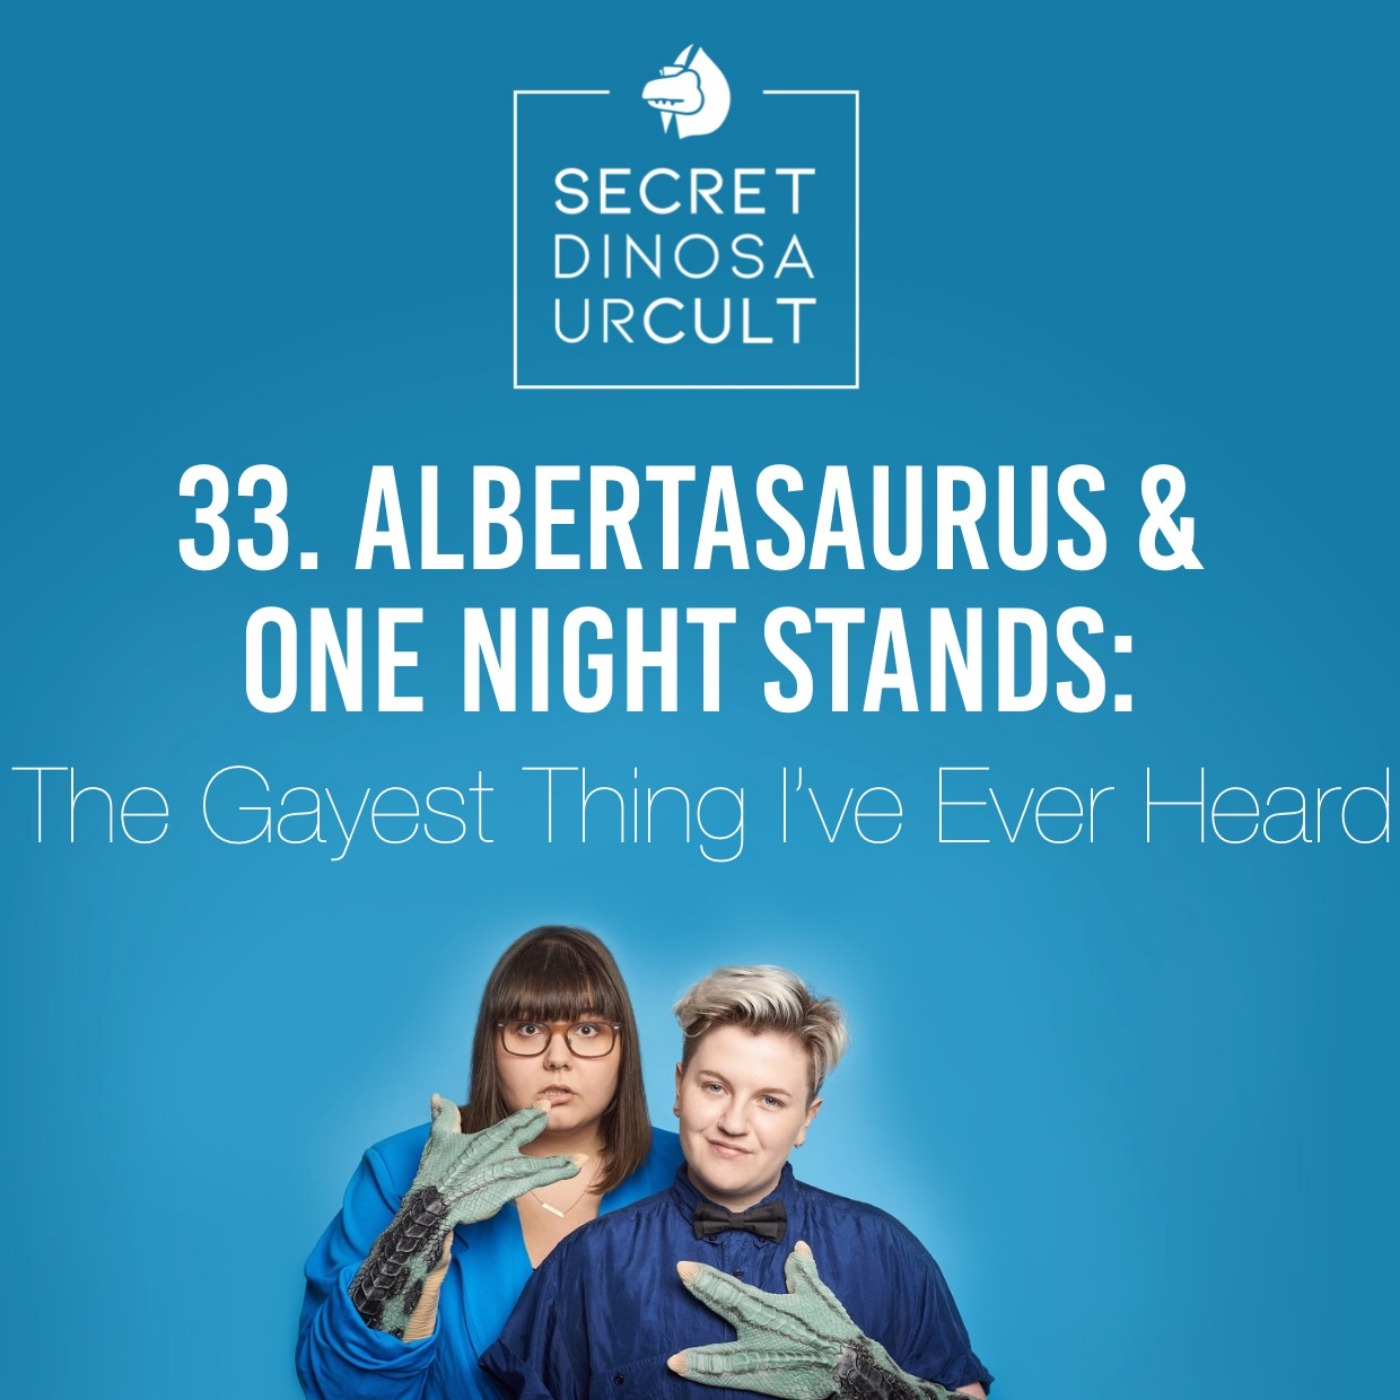 Albertasaurus & One Night Stands: The Gayest Thing I've Ever Heard